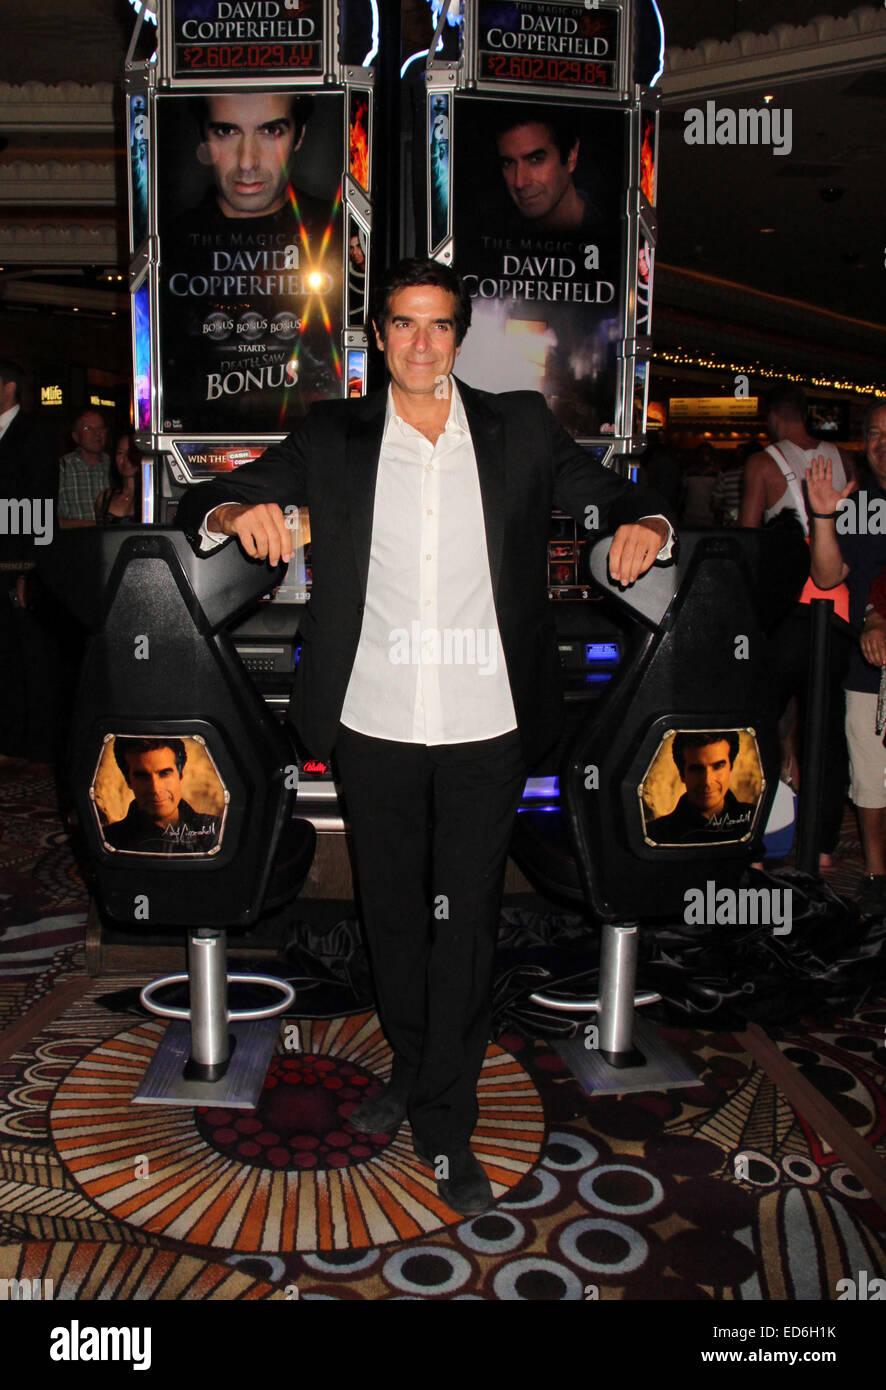 king of magic david copperfield unveils his signature slot  king of magic david copperfield unveils his signature slot machine the magic of david copperfield at the mgm grand in las vegas featuring david